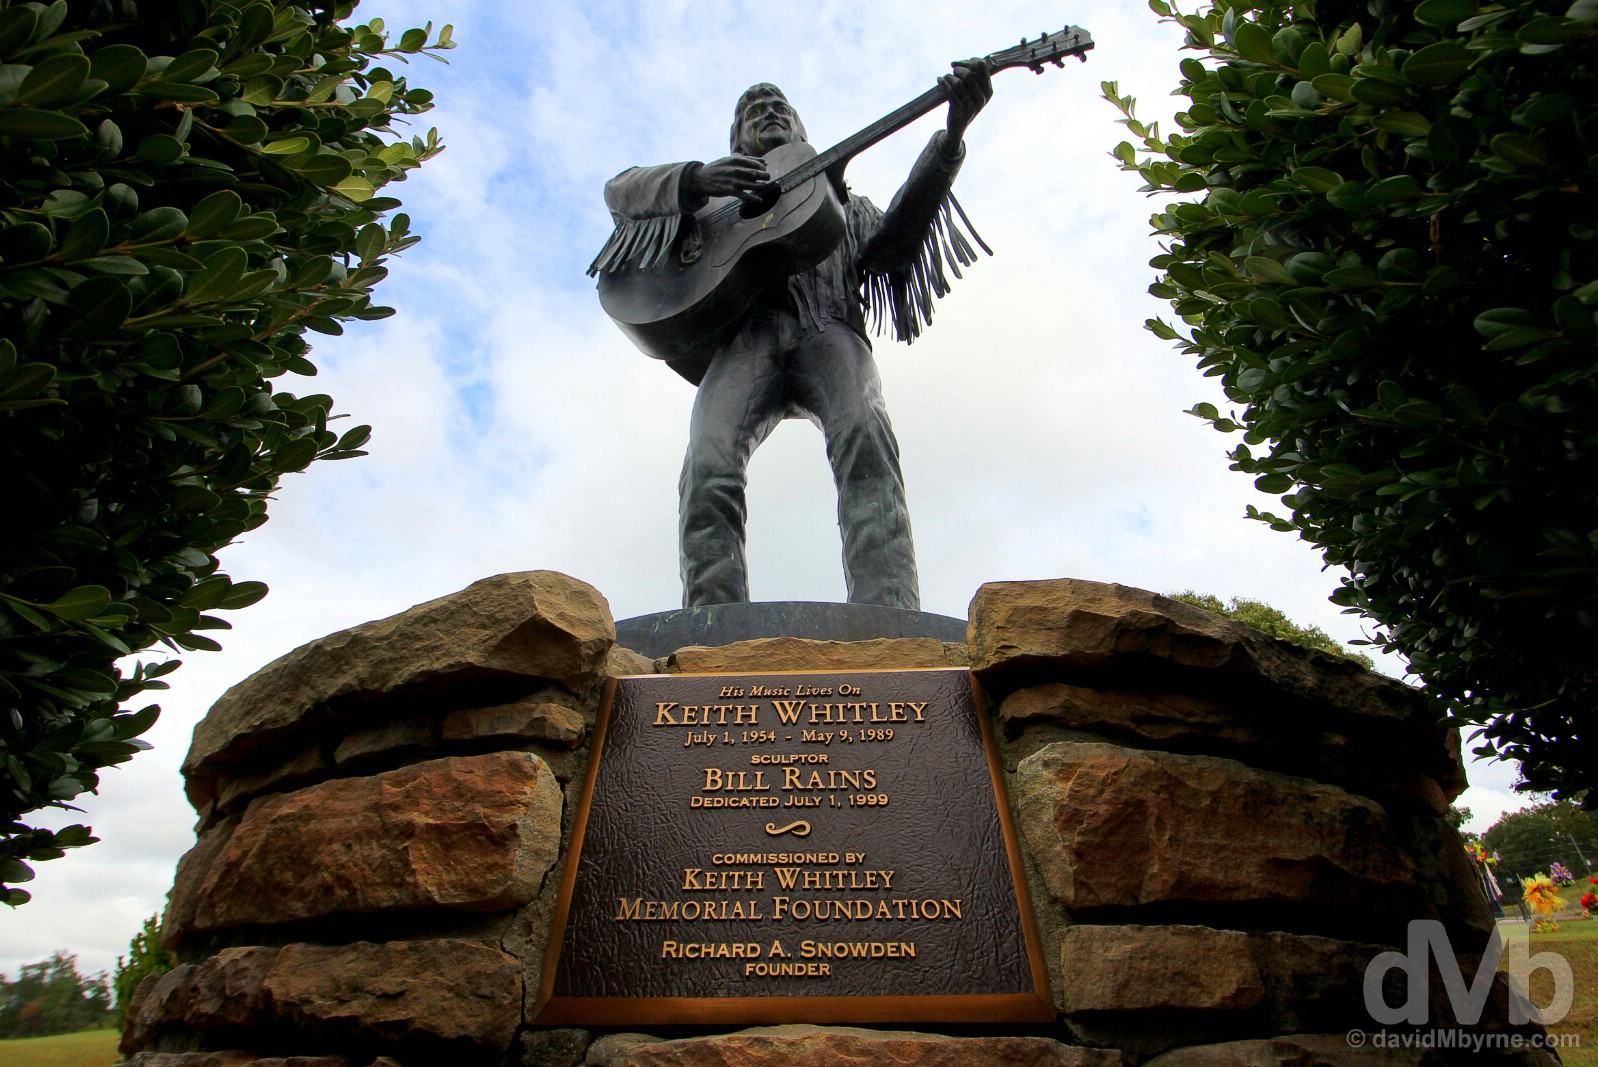 The Keith Whitley statue in the graveyard in Sandy Hook, Elliott County, Kentucky, USA. September 26, 2016.